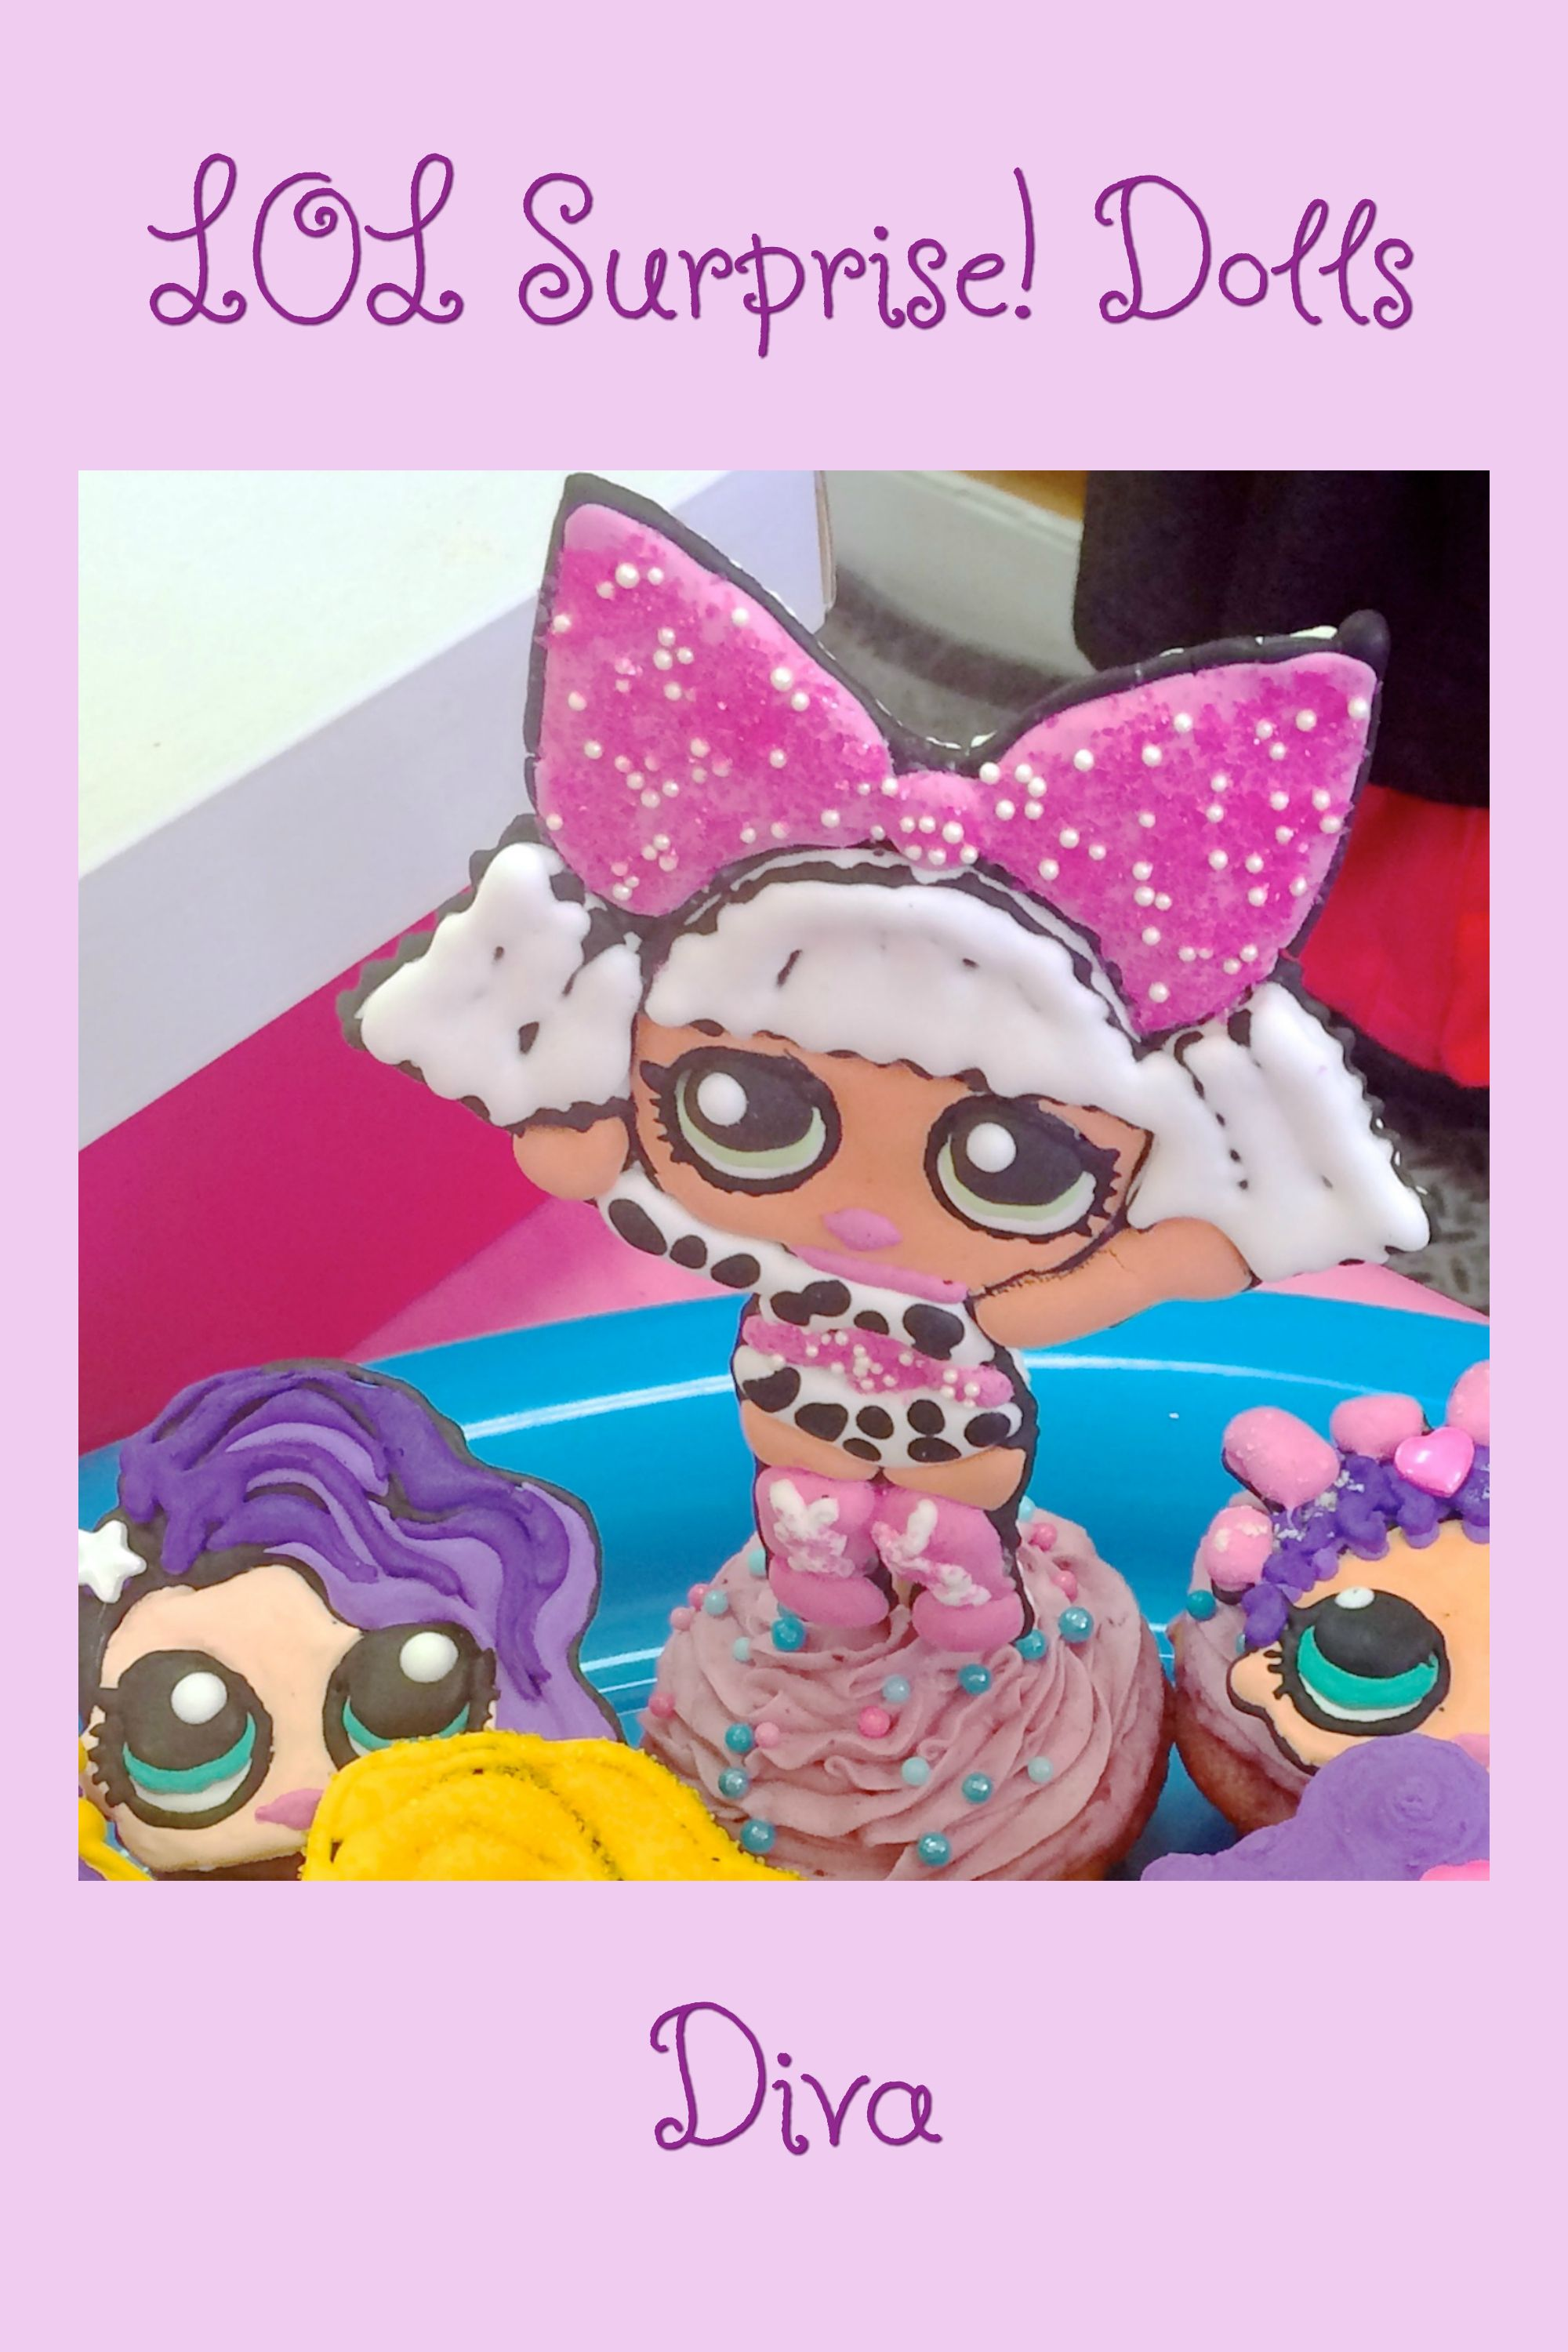 Lol surprise dolls diva made with royal icing lol surprise doll 7 year birthday party - Diva lol surprise ...